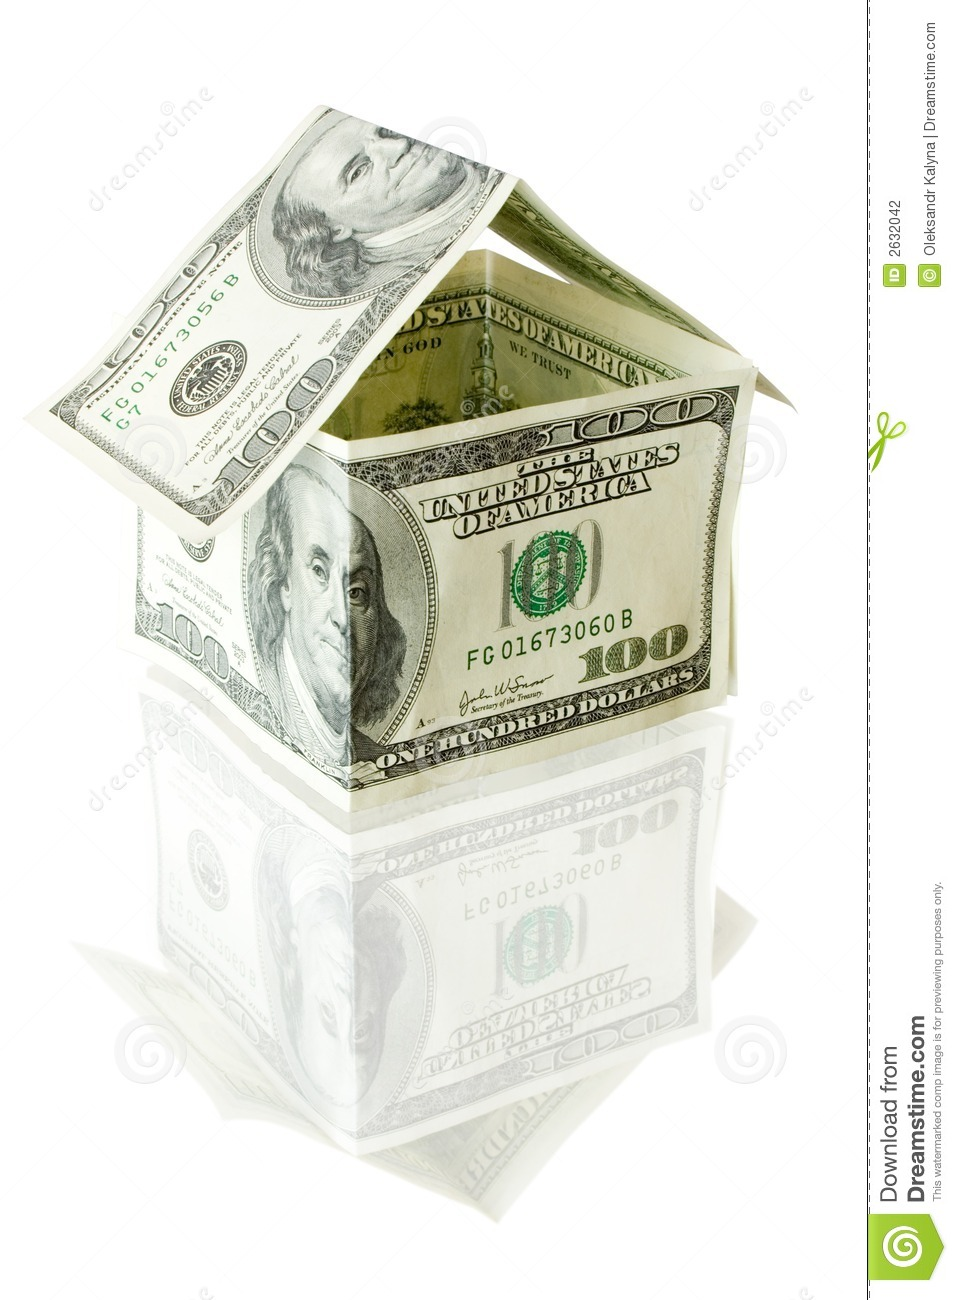 Savings money buying new house royalty free stock image for Saving for a new home